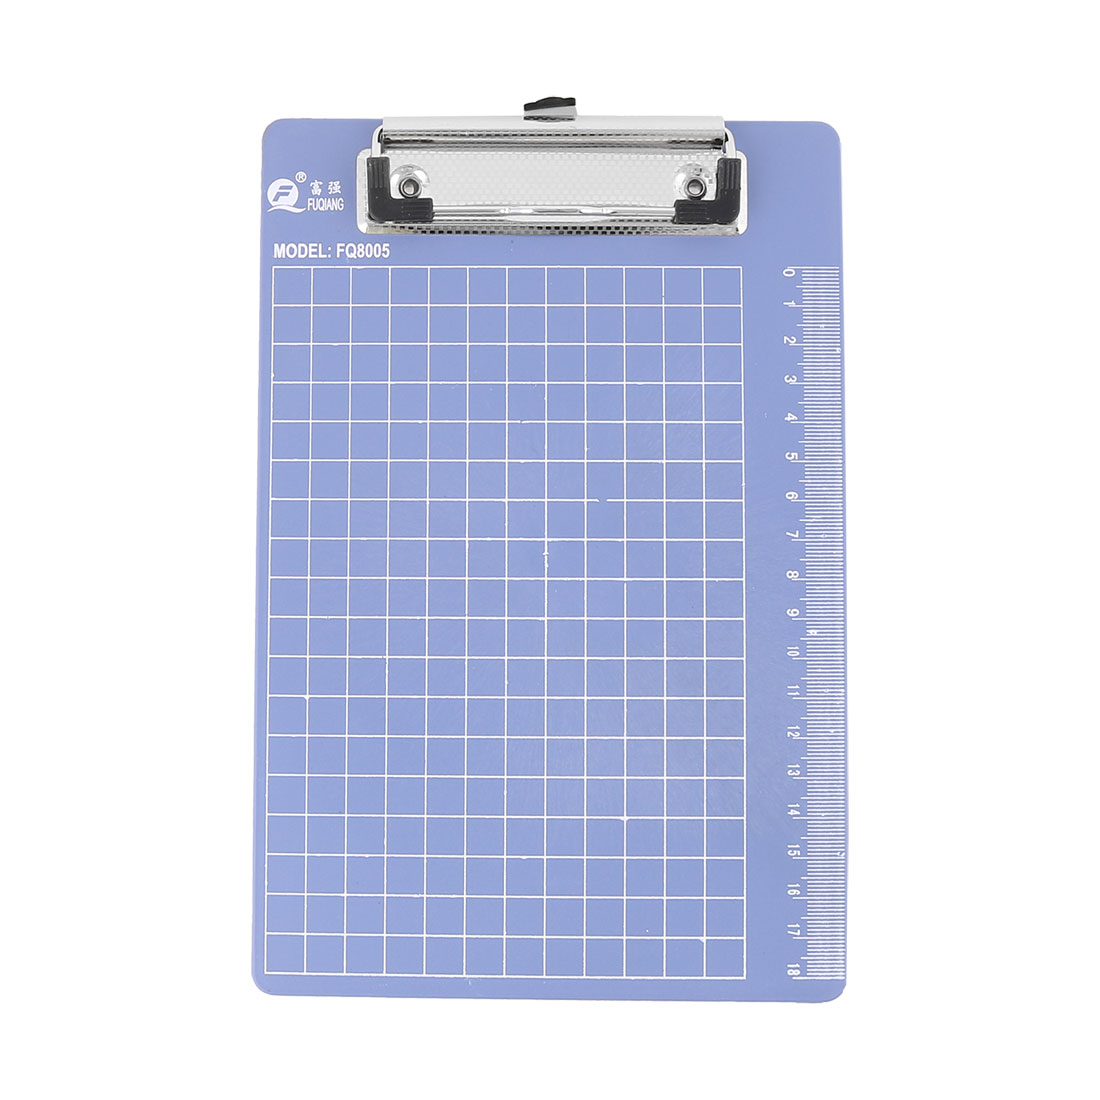 Plastic A5 Restaurant Menu Office File Paper Clip Board Clipboard Blue